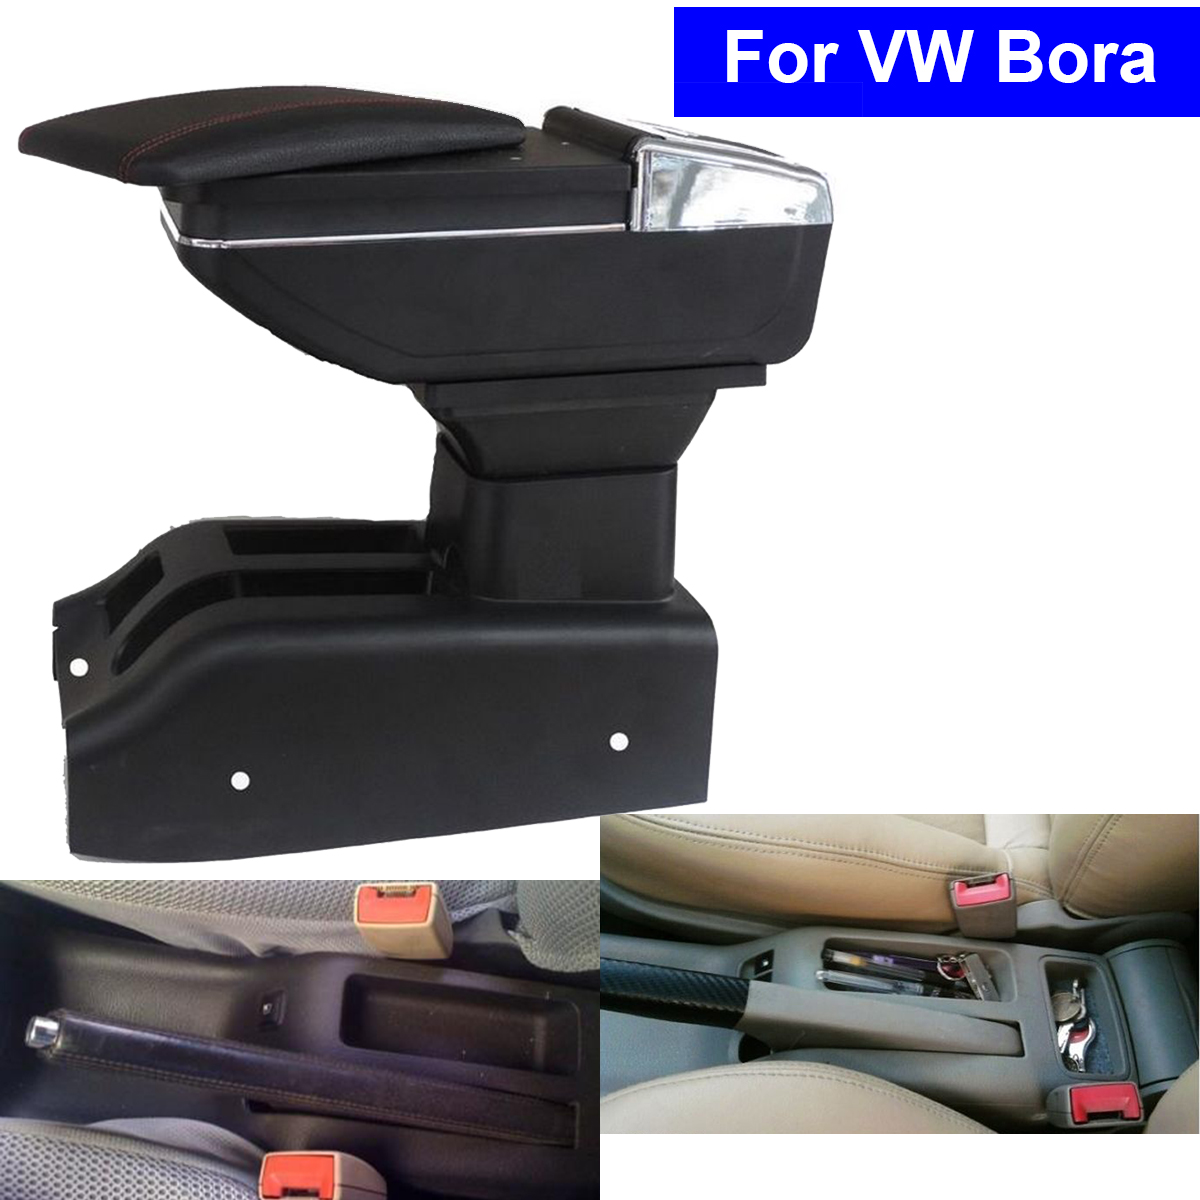 Leather Car Center Console Armrest Storage Box for Volkswagen VW Bora 2001 ~ 2006 2007 2008 2009 2010 Armrests Free Shipping lascana бикини lascana модель 2779174